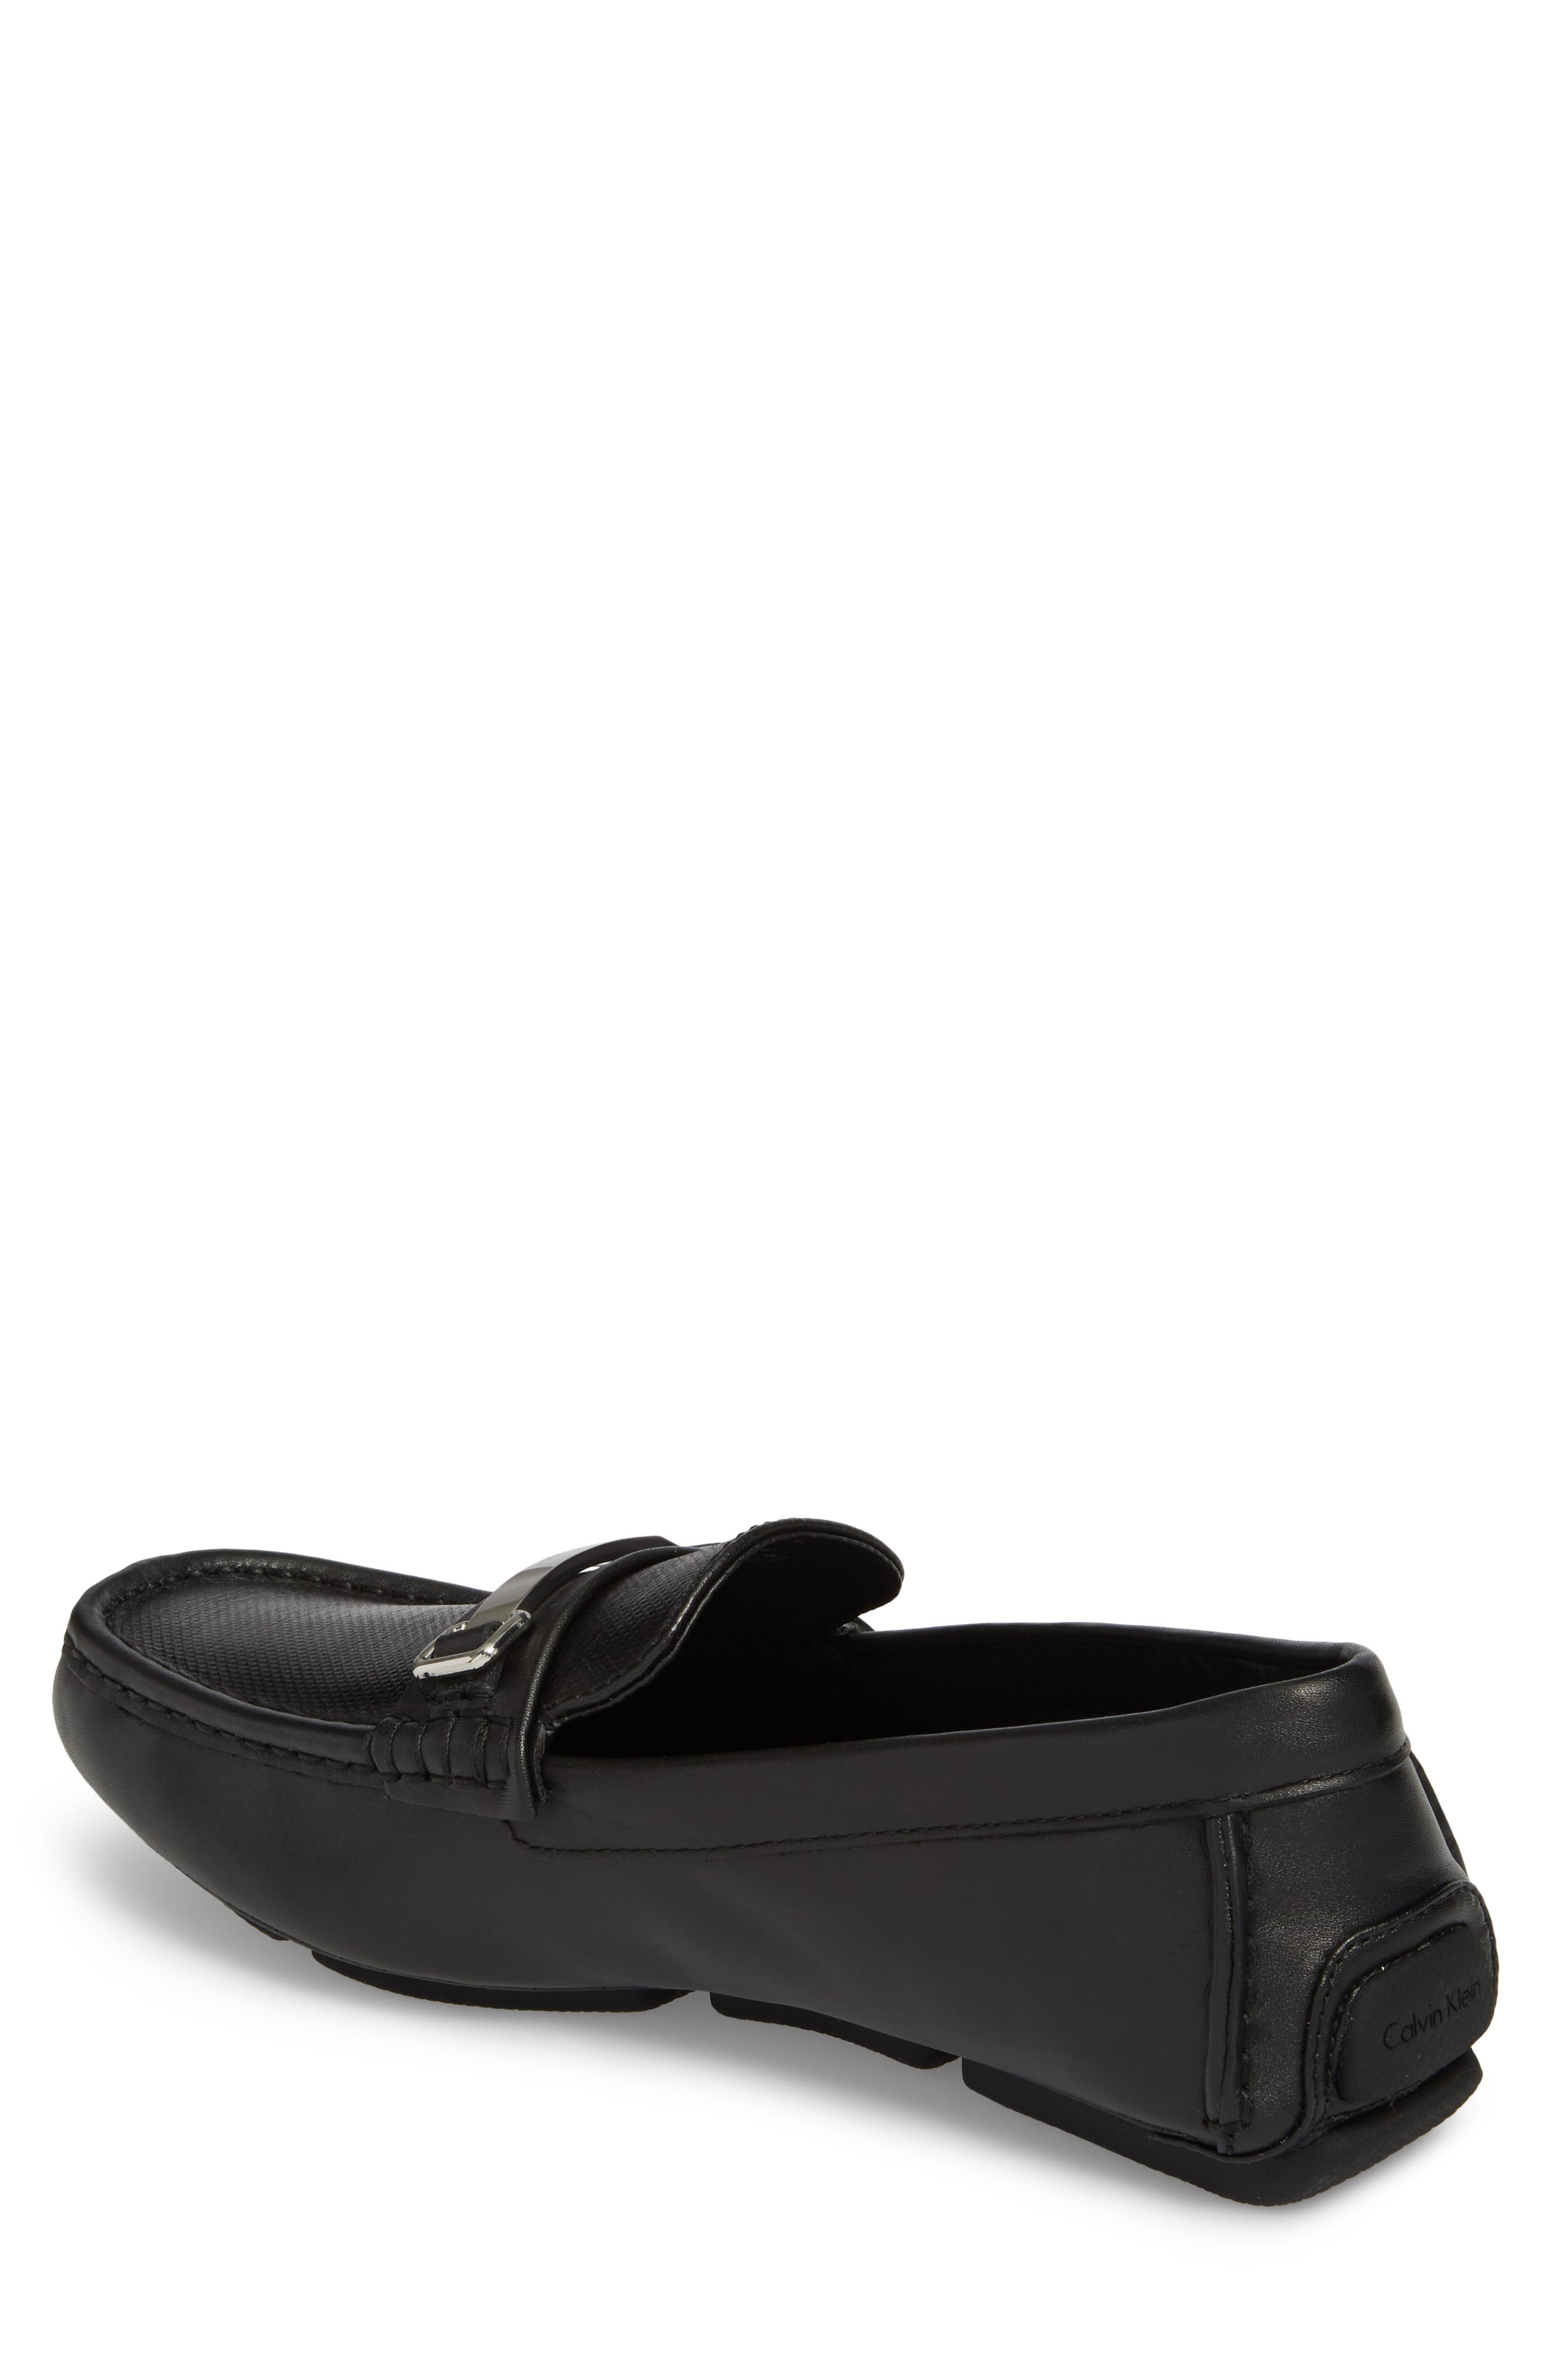 CALVIN KLEIN, Maddix Textured Driving Moccasin, Alternate thumbnail 2, color, BLACK LEATHER